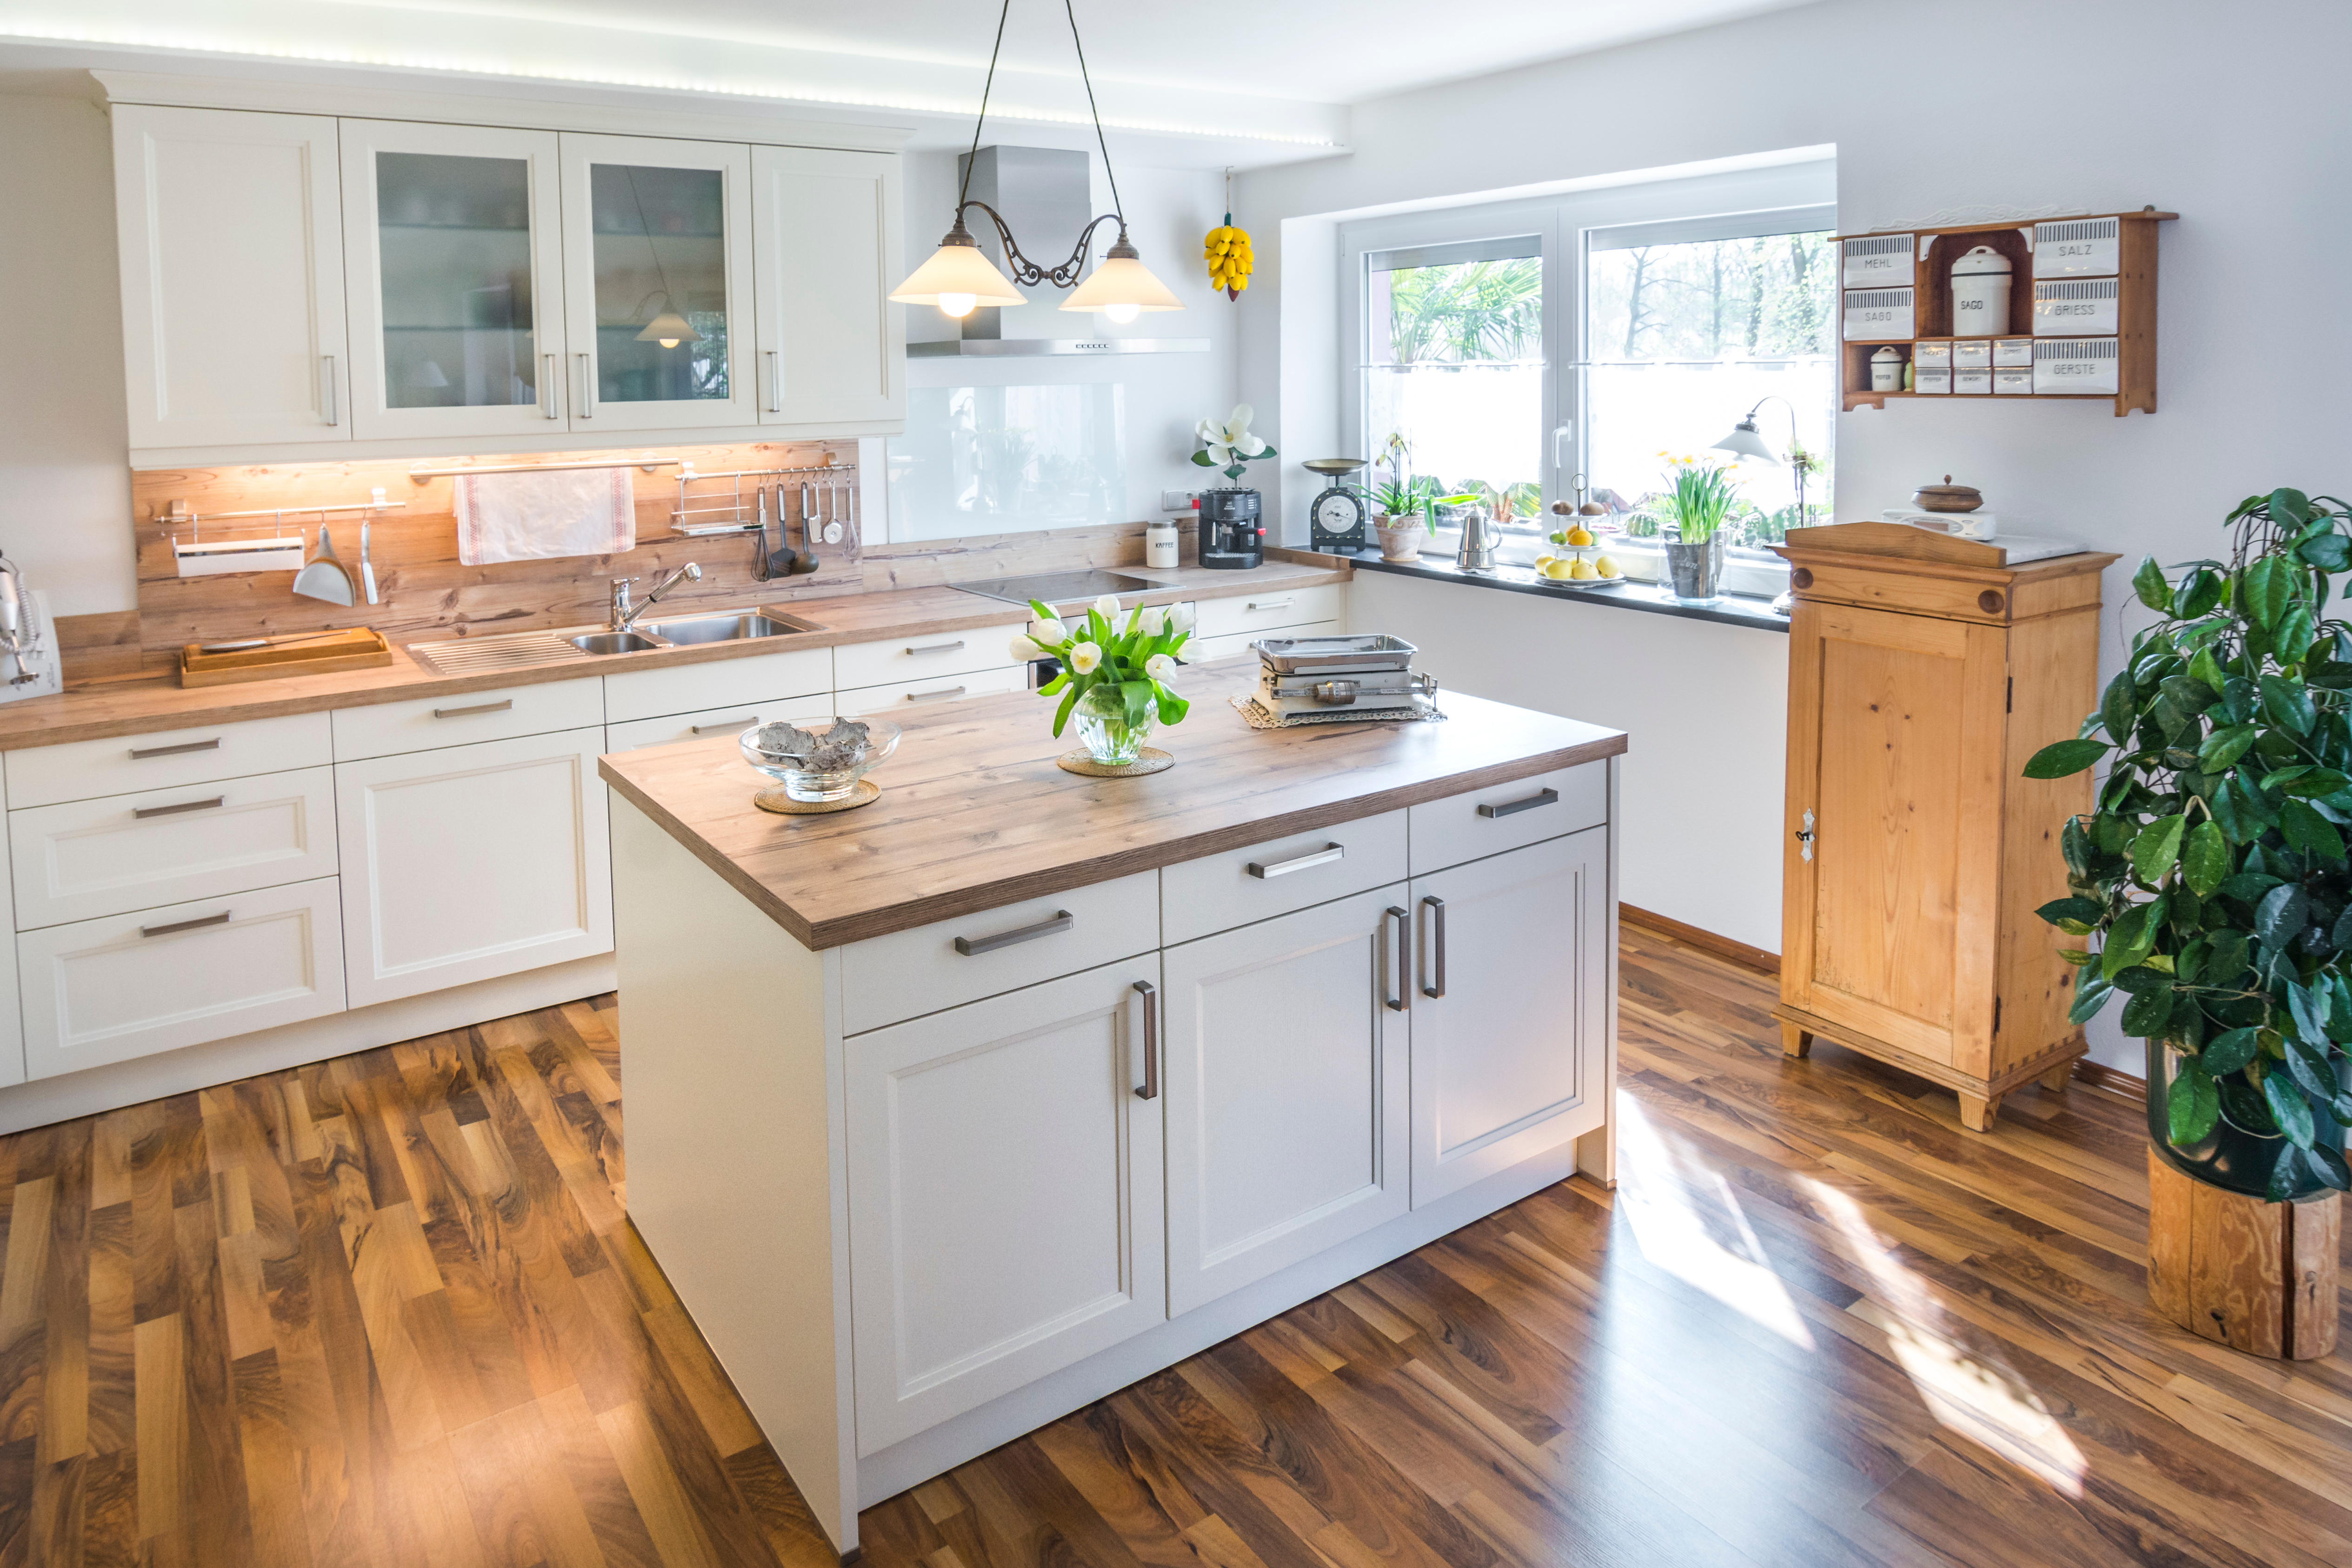 3 Ways To Complement A Butcher Block Countertop In Your Kitchen Hardwood Lumber Company